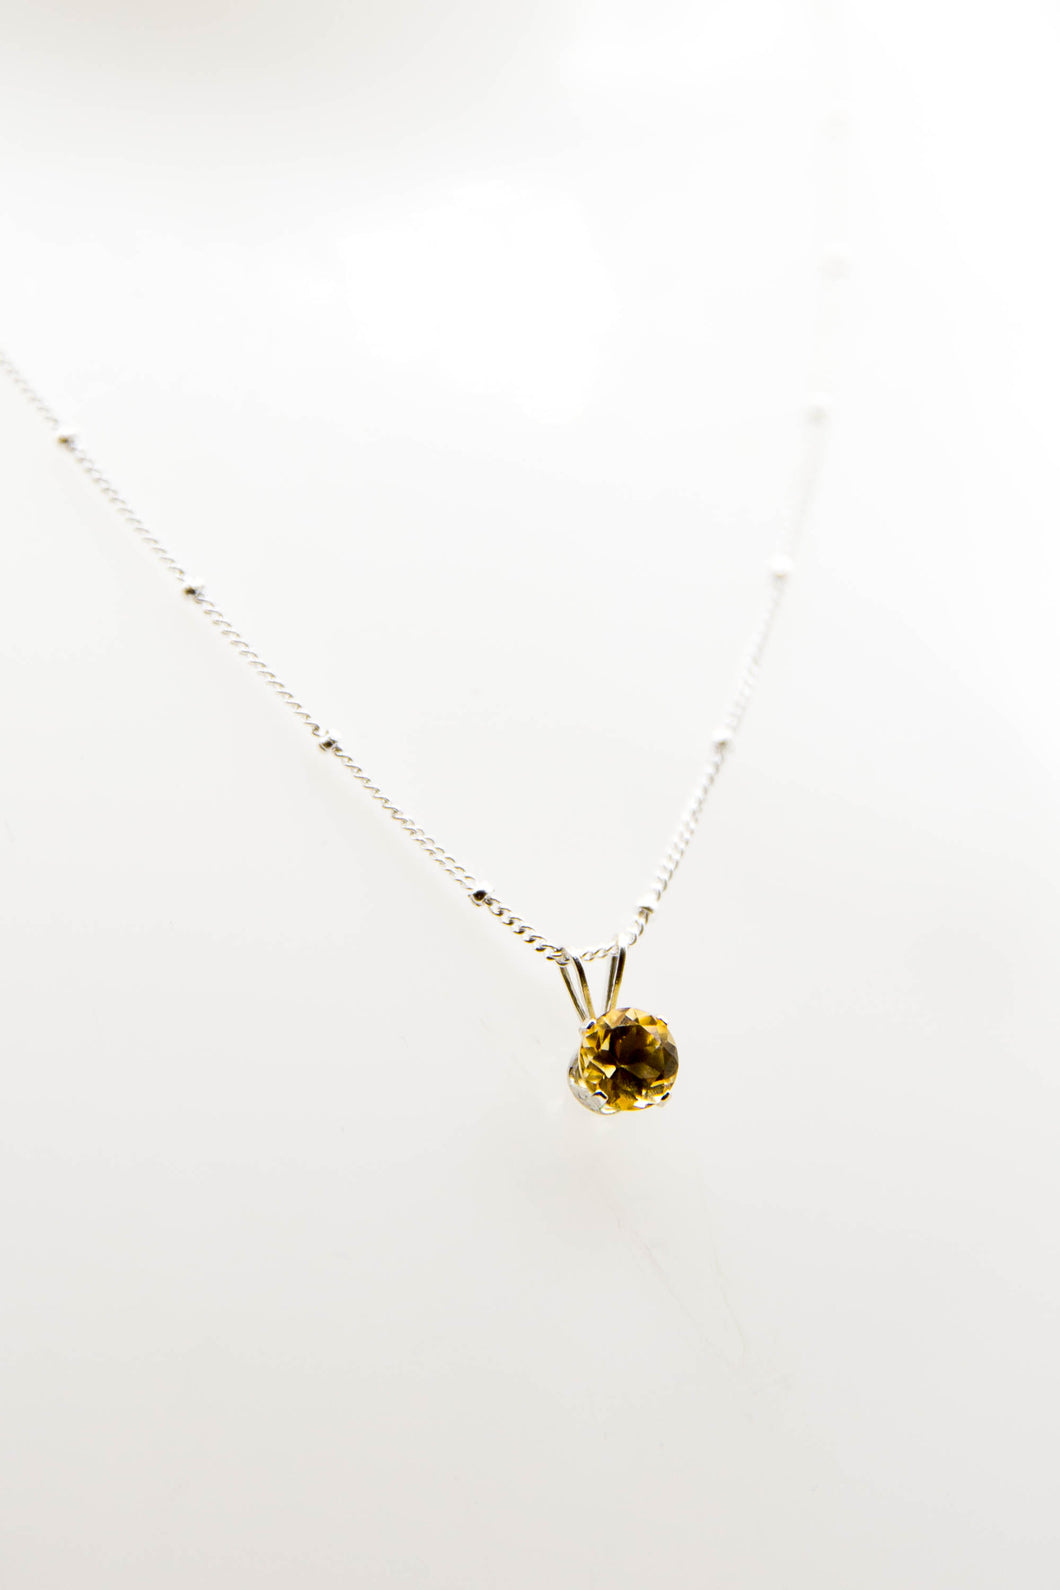 Nova Citrine Necklace (Available in Silver or Gold)